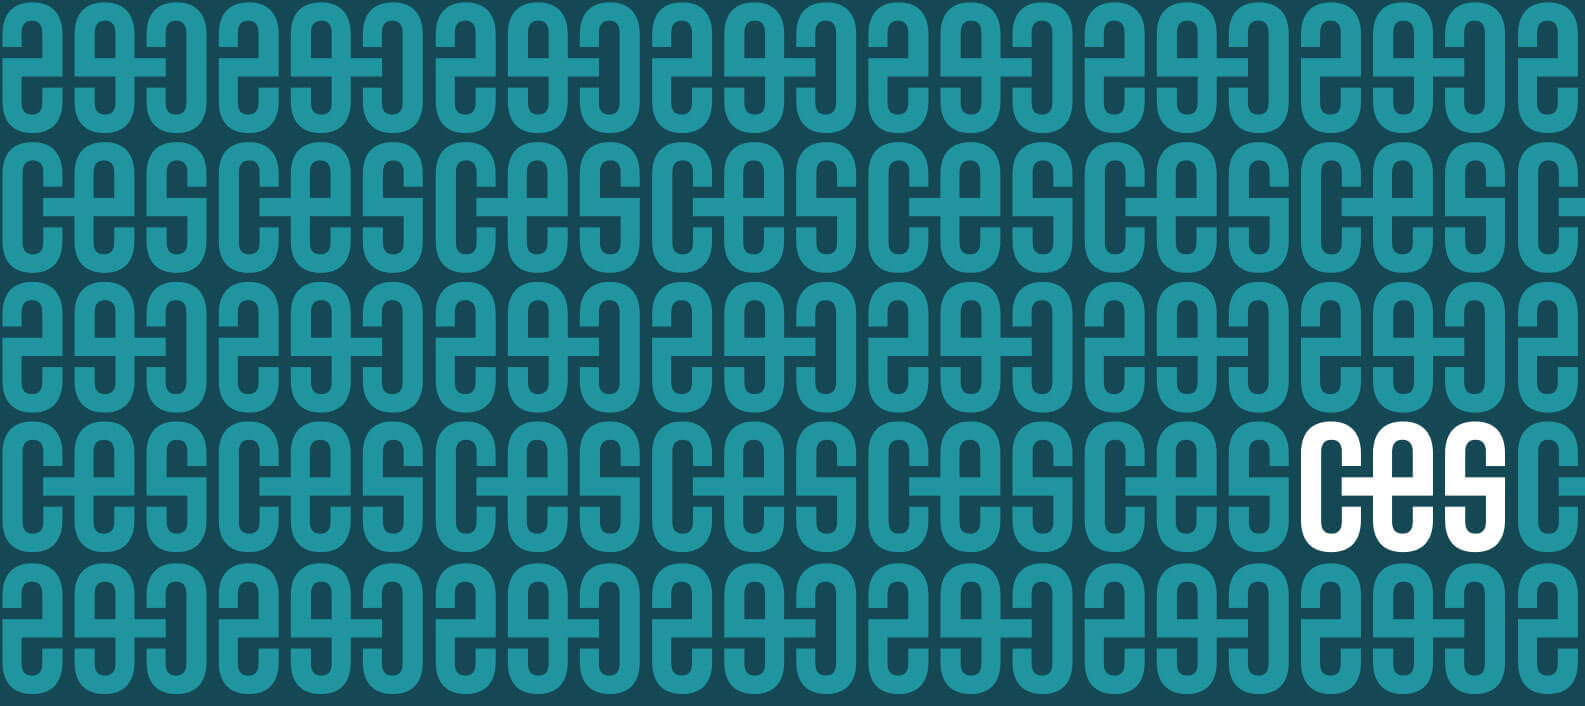 CES Consulting branded pattern by Jacober Creative